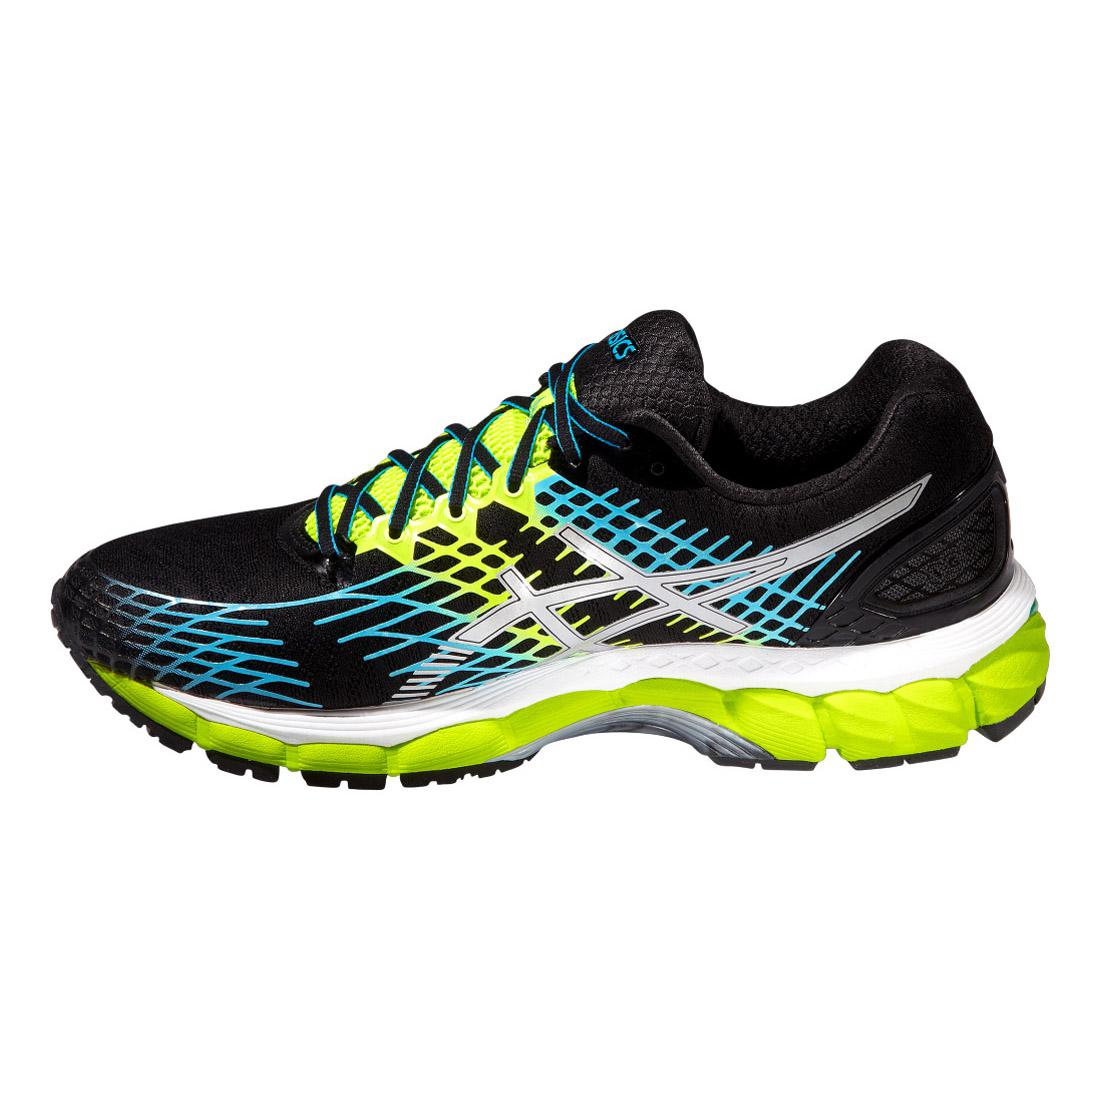 asics mens gel nimbus 17 running shoes onyx yellow. Black Bedroom Furniture Sets. Home Design Ideas